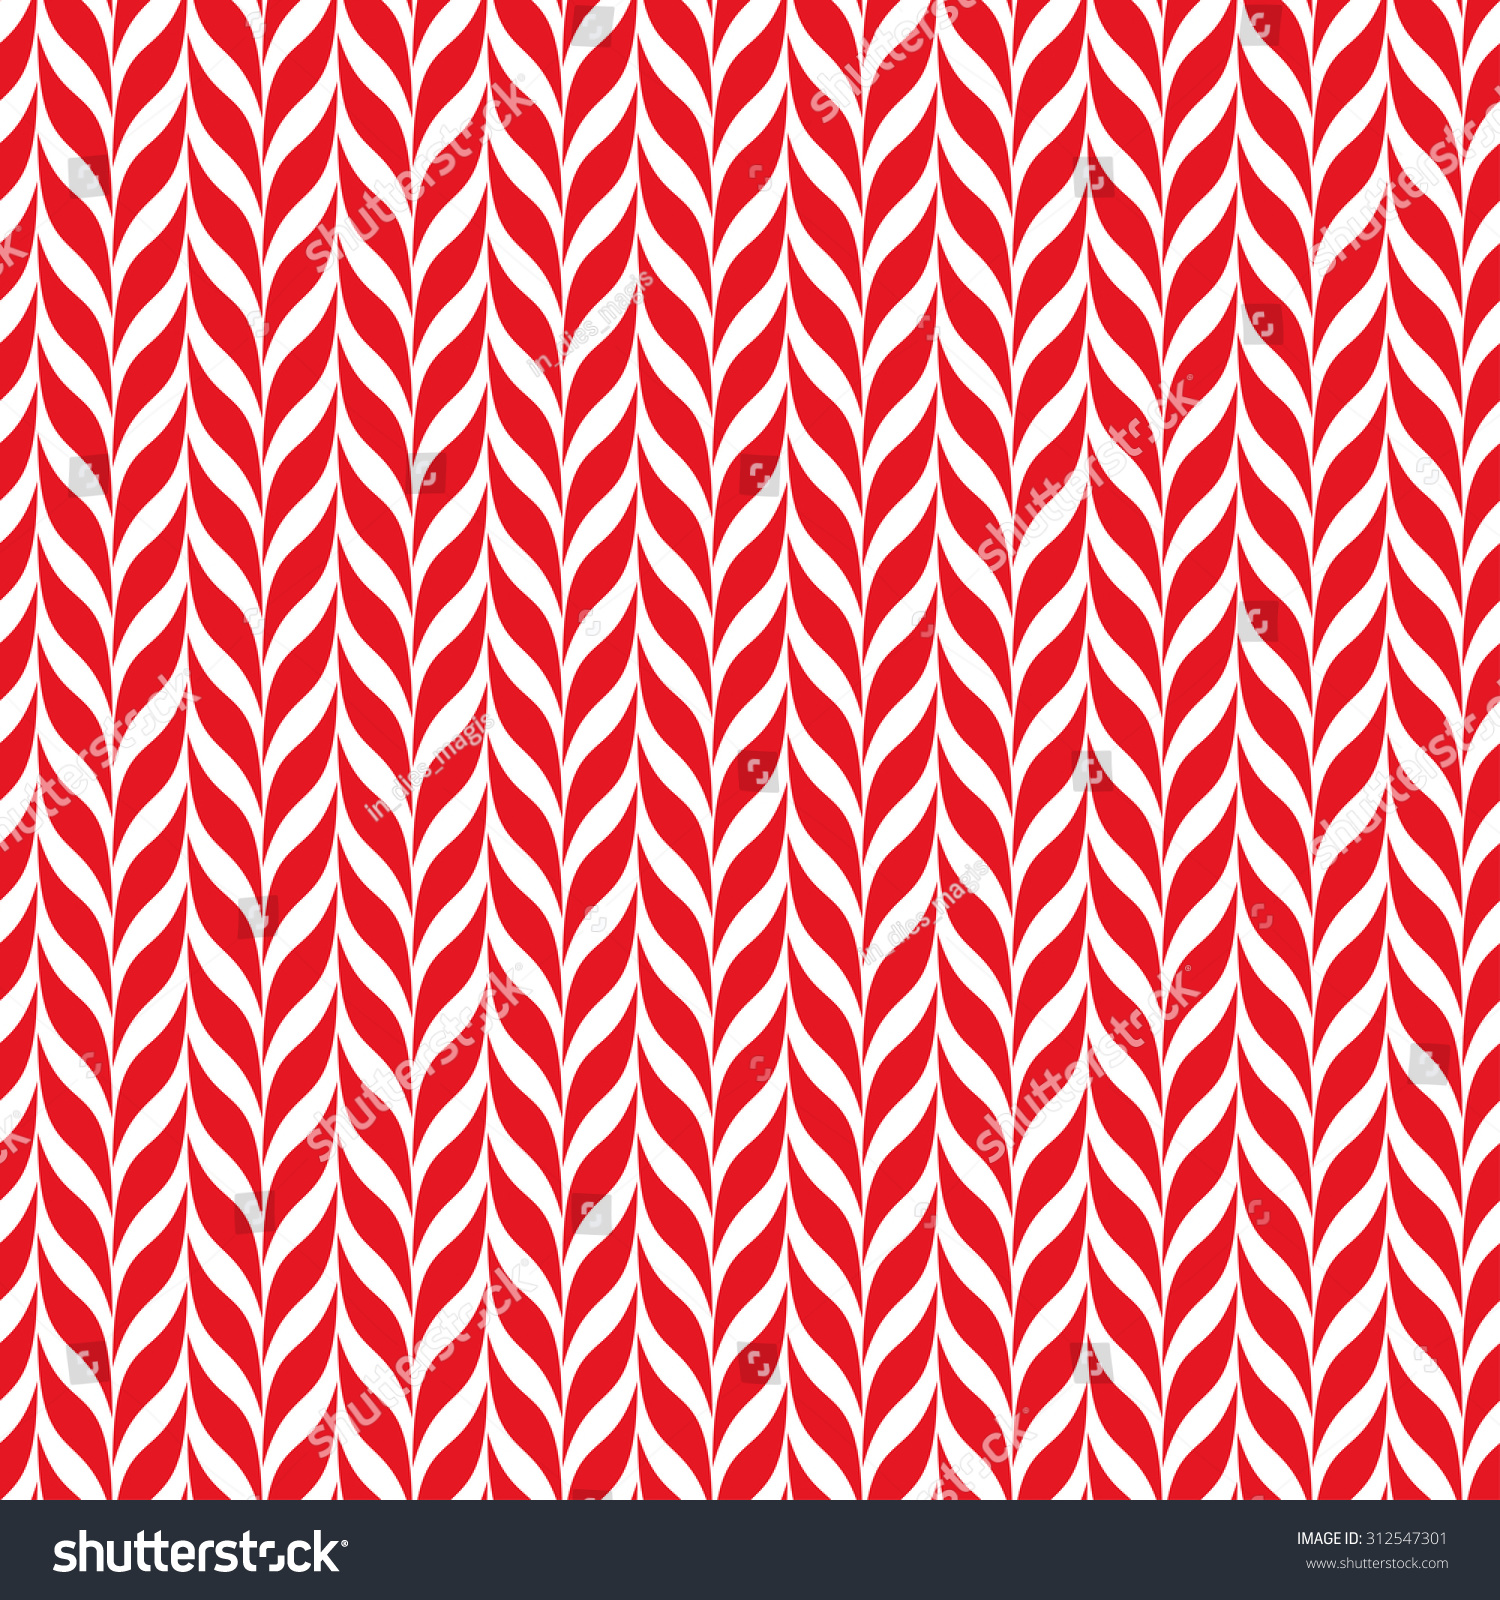 stock vector candy canes vector background seamless xmas pattern with red and white candy cane stripes cute 312547301